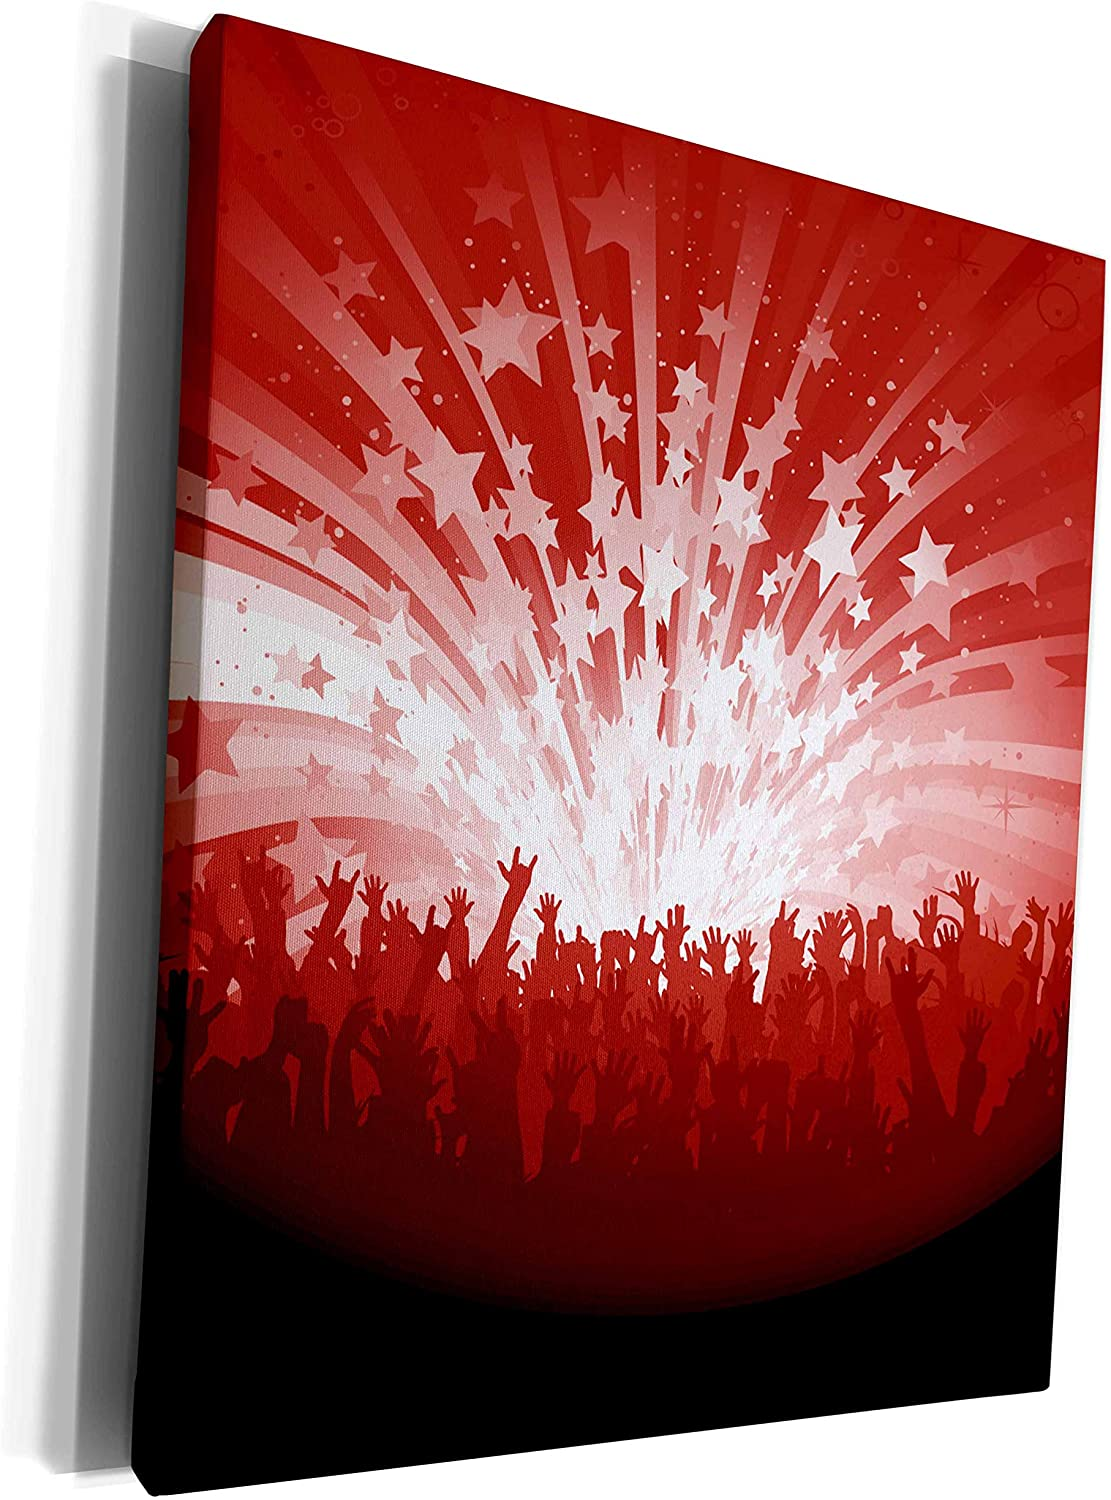 3dRose Anne Marie Baugh - Urban - Concert Hands In The Air and Stars In The Sky In Red and White - Museum Grade Canvas Wrap (cw_235901_1)